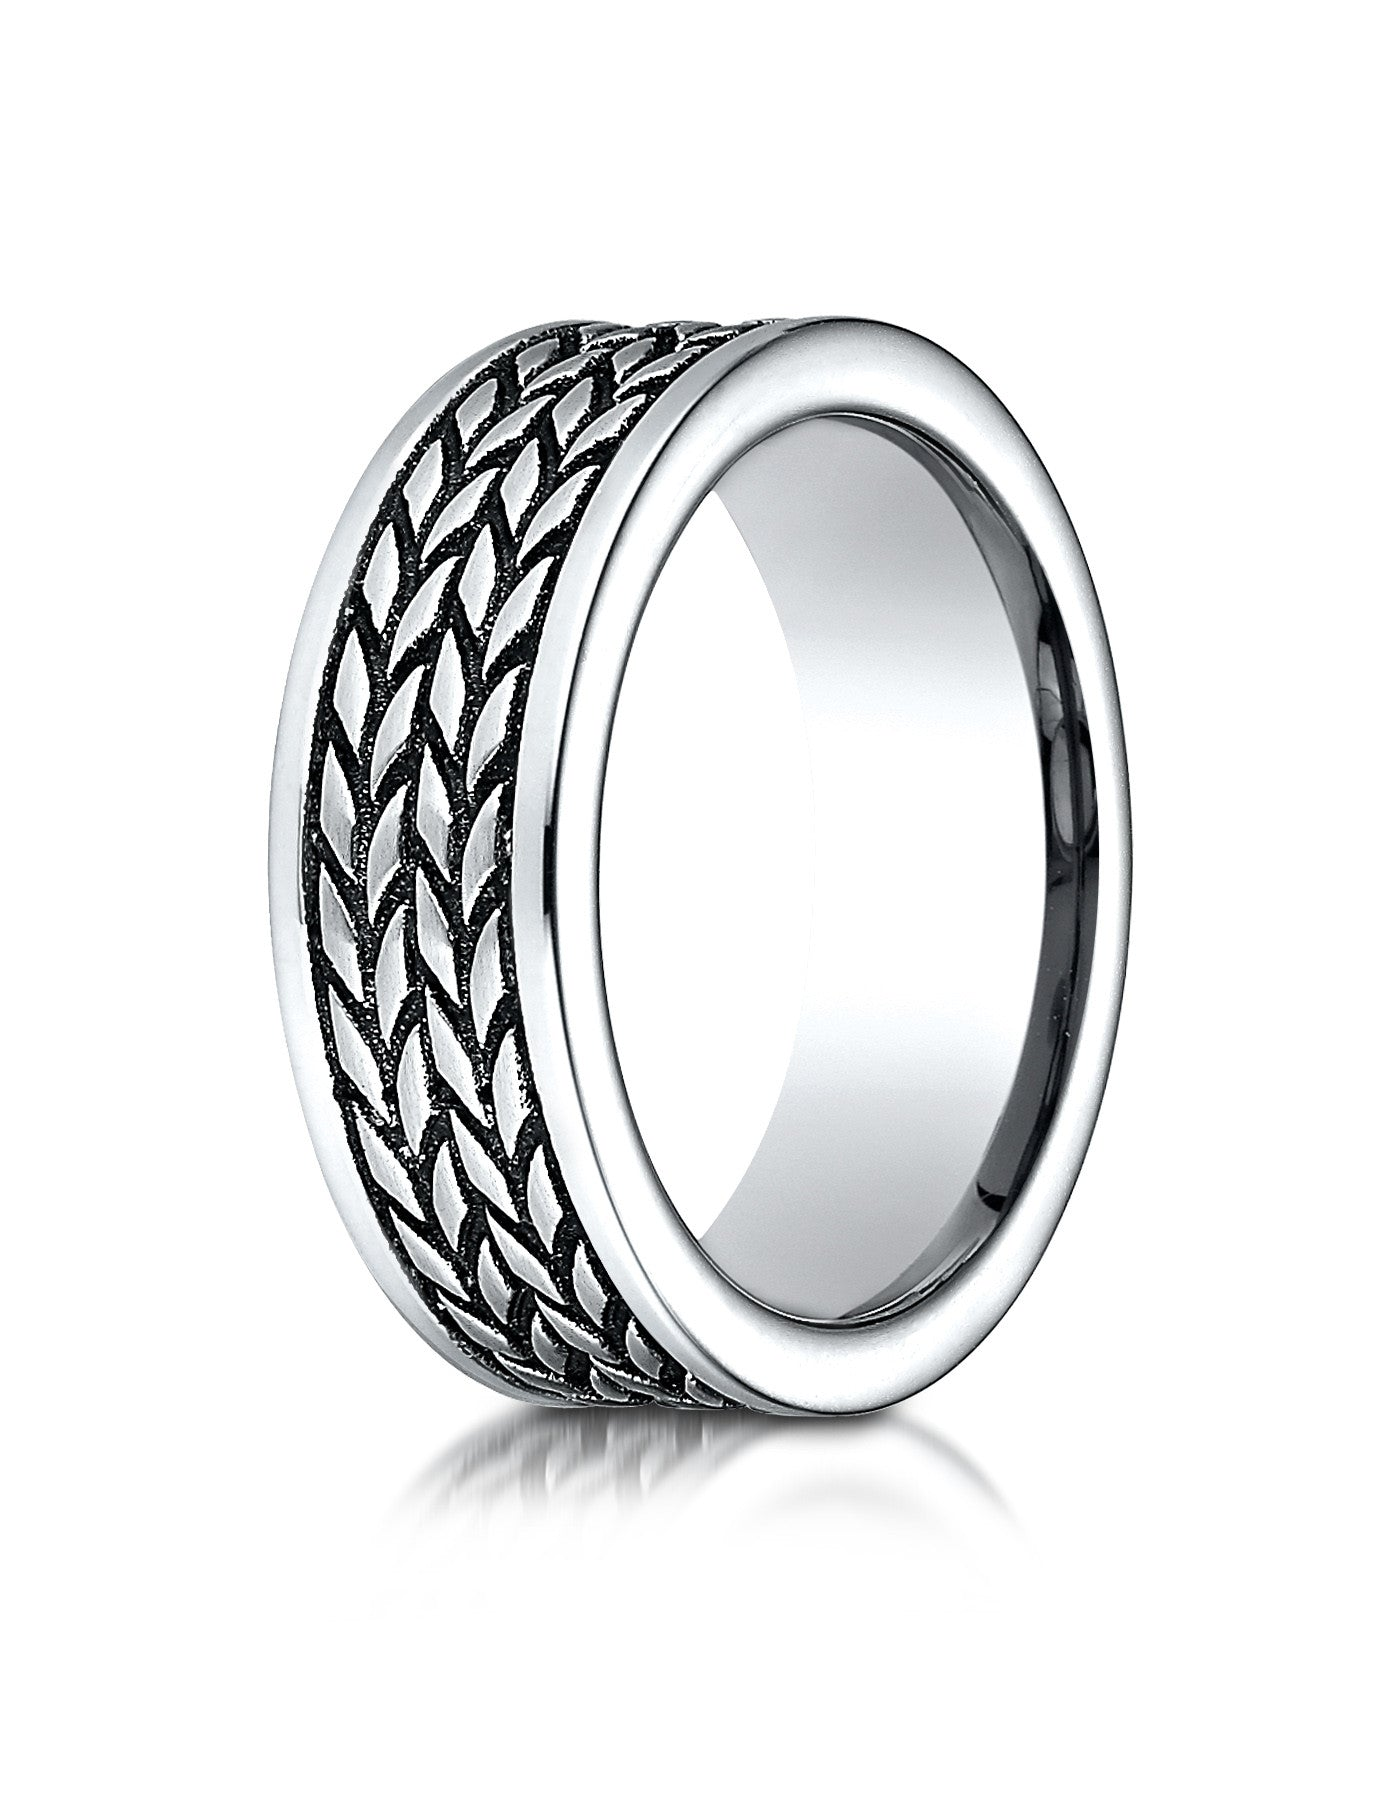 teramo mens cobalt wedding band with tire tread pattern - Cobalt Wedding Rings